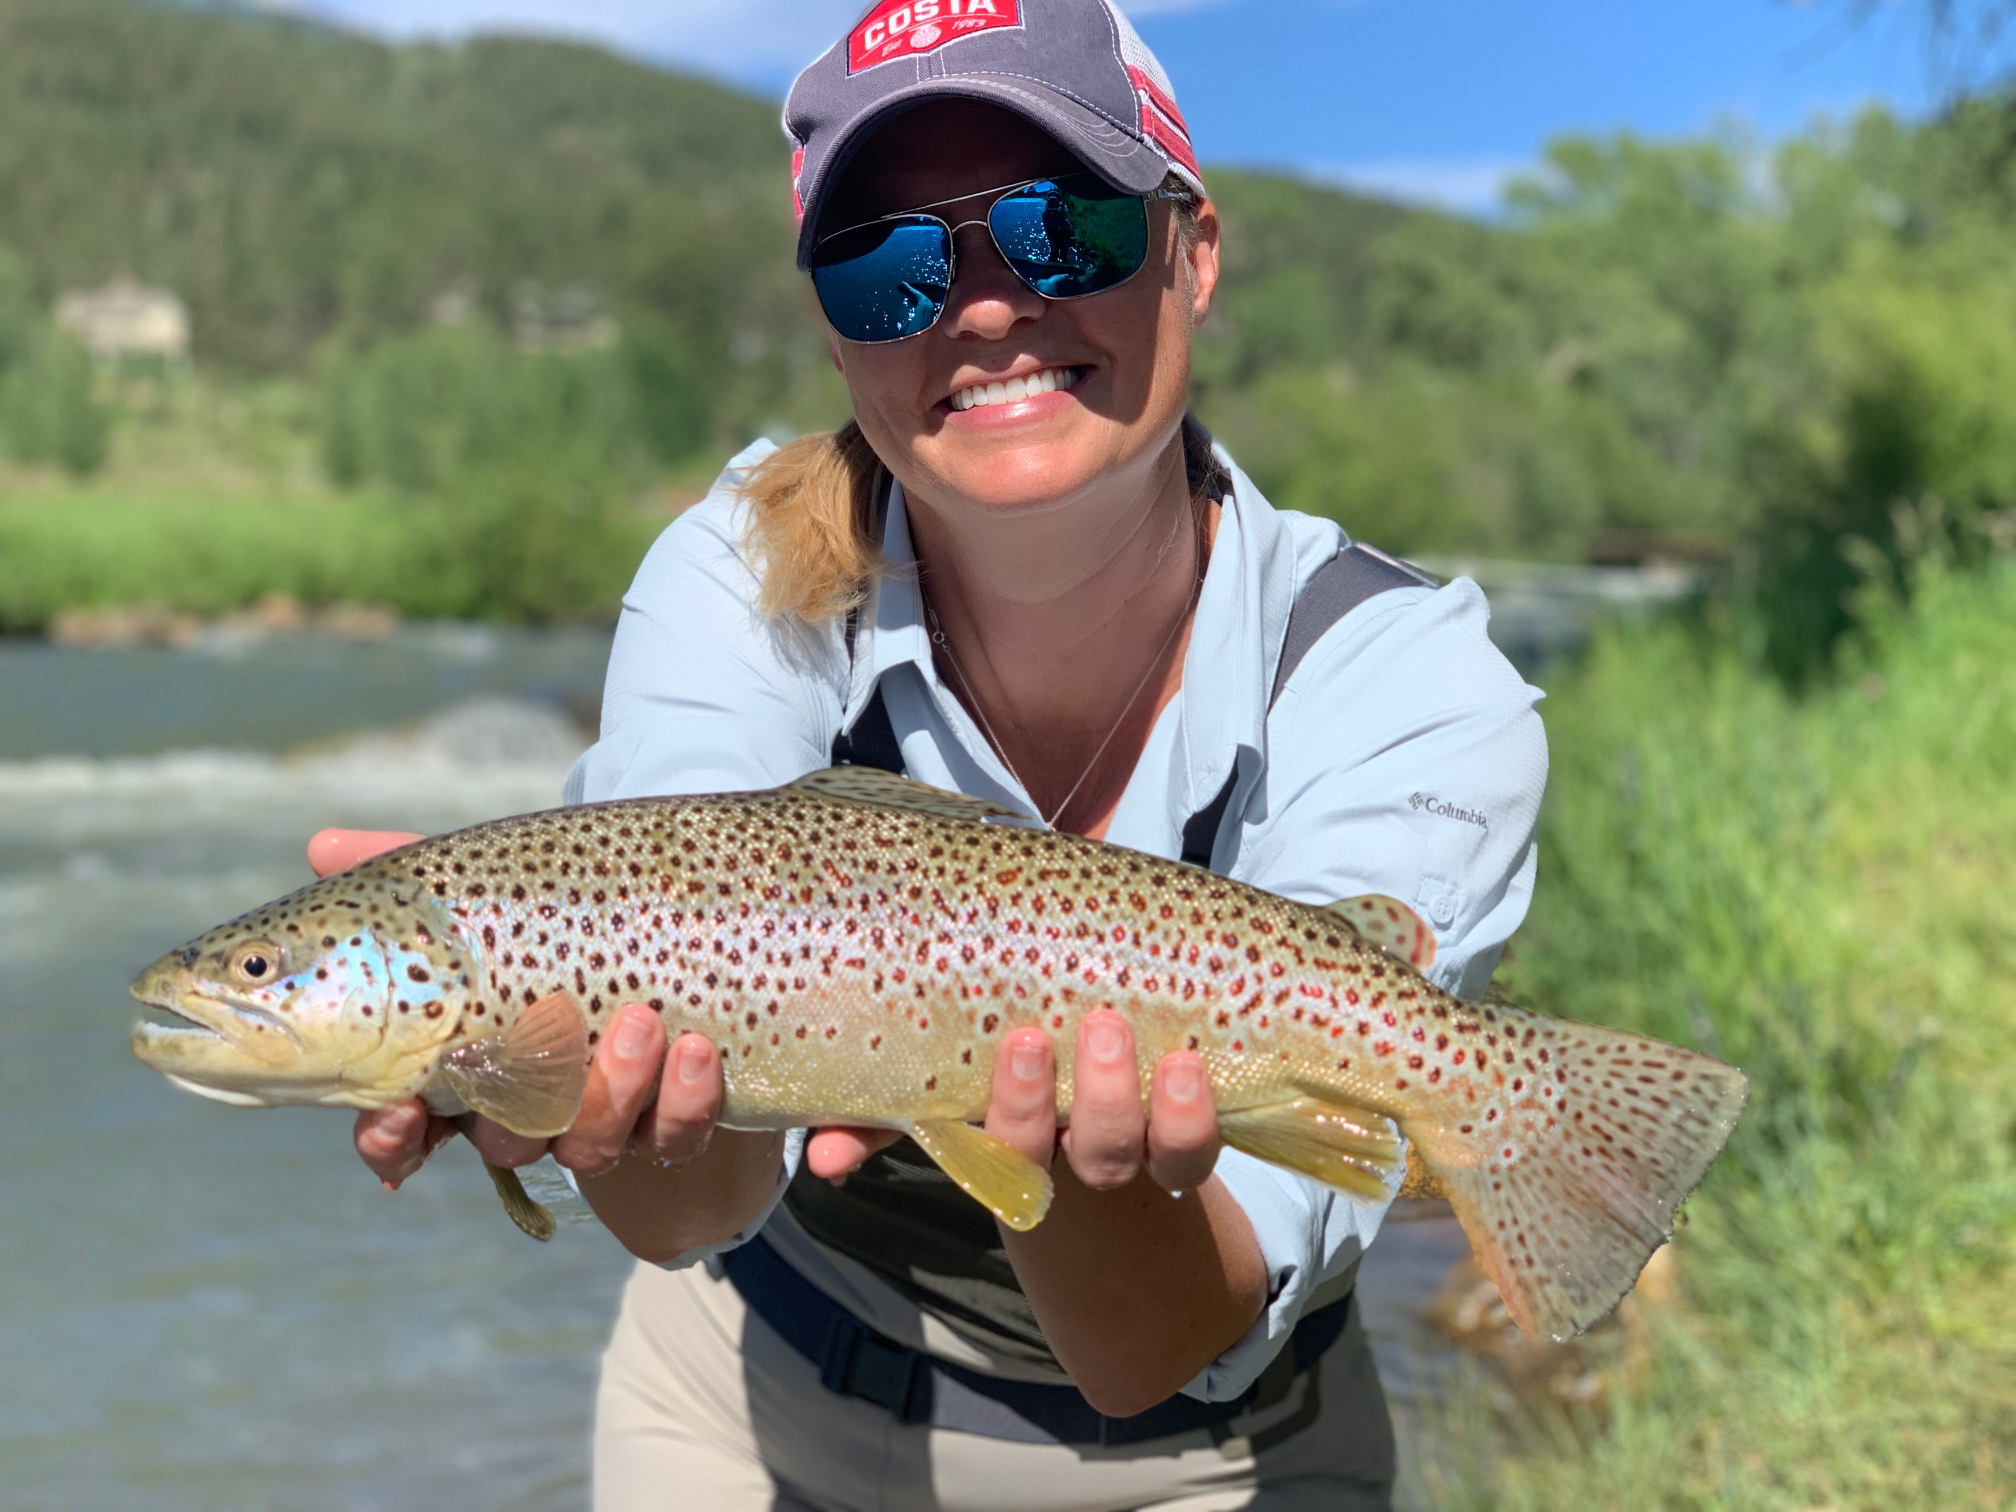 Big Brown Trout just outside of Denver Colorado.